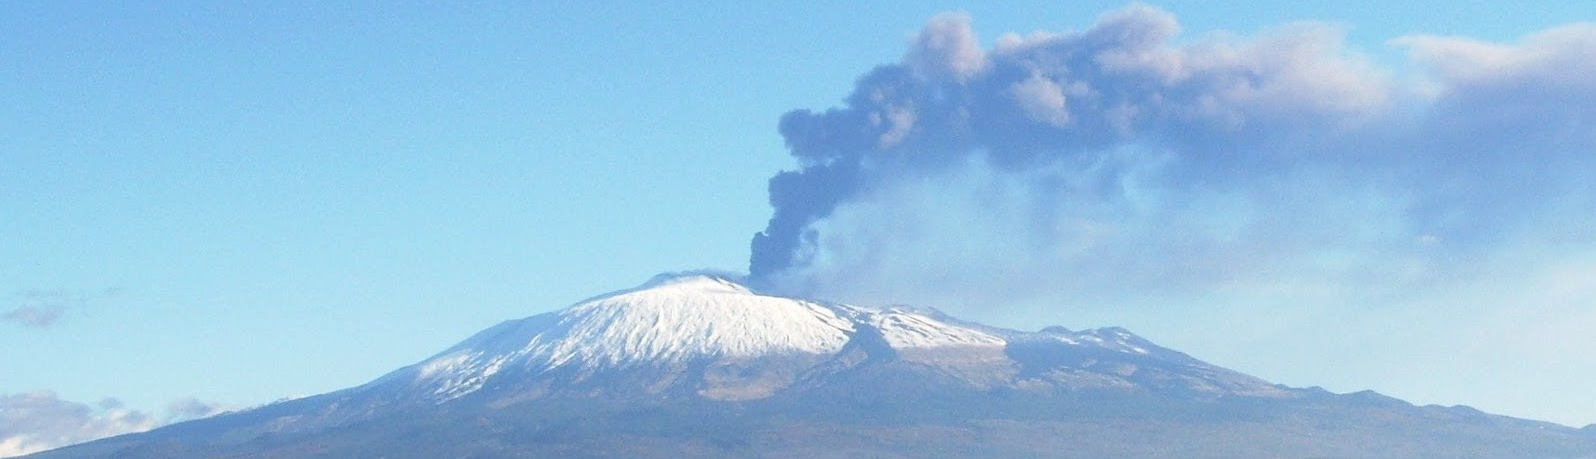 Etna during an eruption